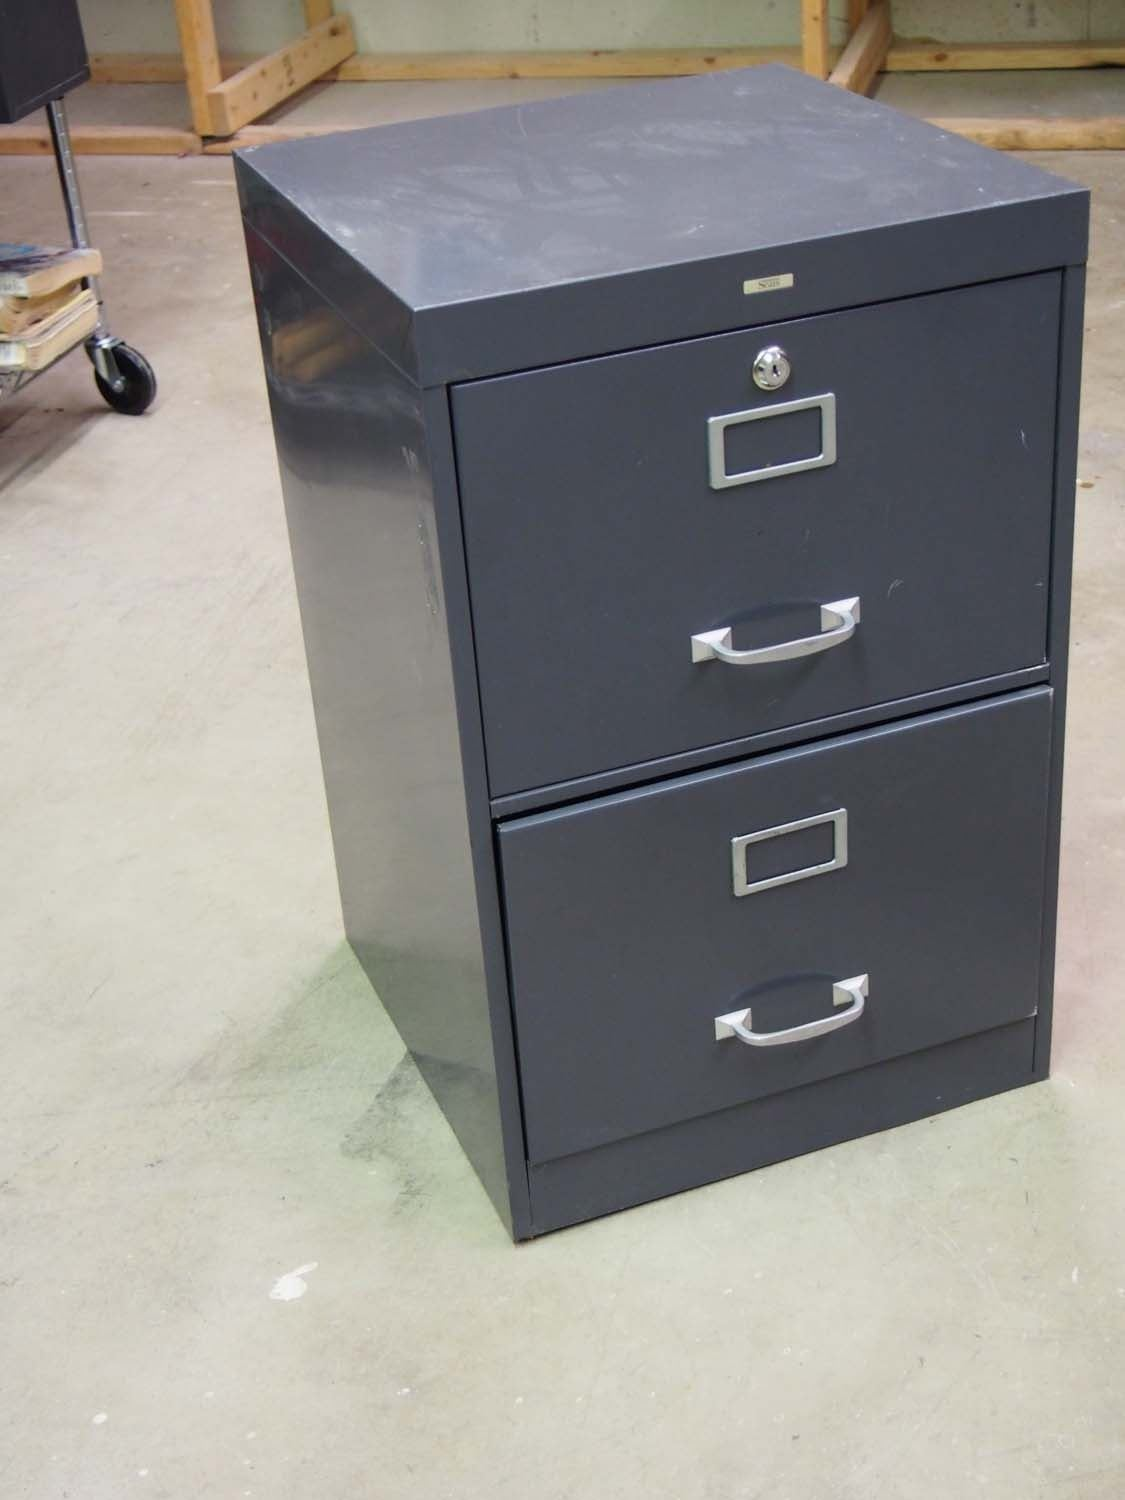 Image 1  Sears Two Drawer Metal Filing Cabinet 18 x18 x28  ... & Sears Two Drawer Metal Filing Cabinet 18